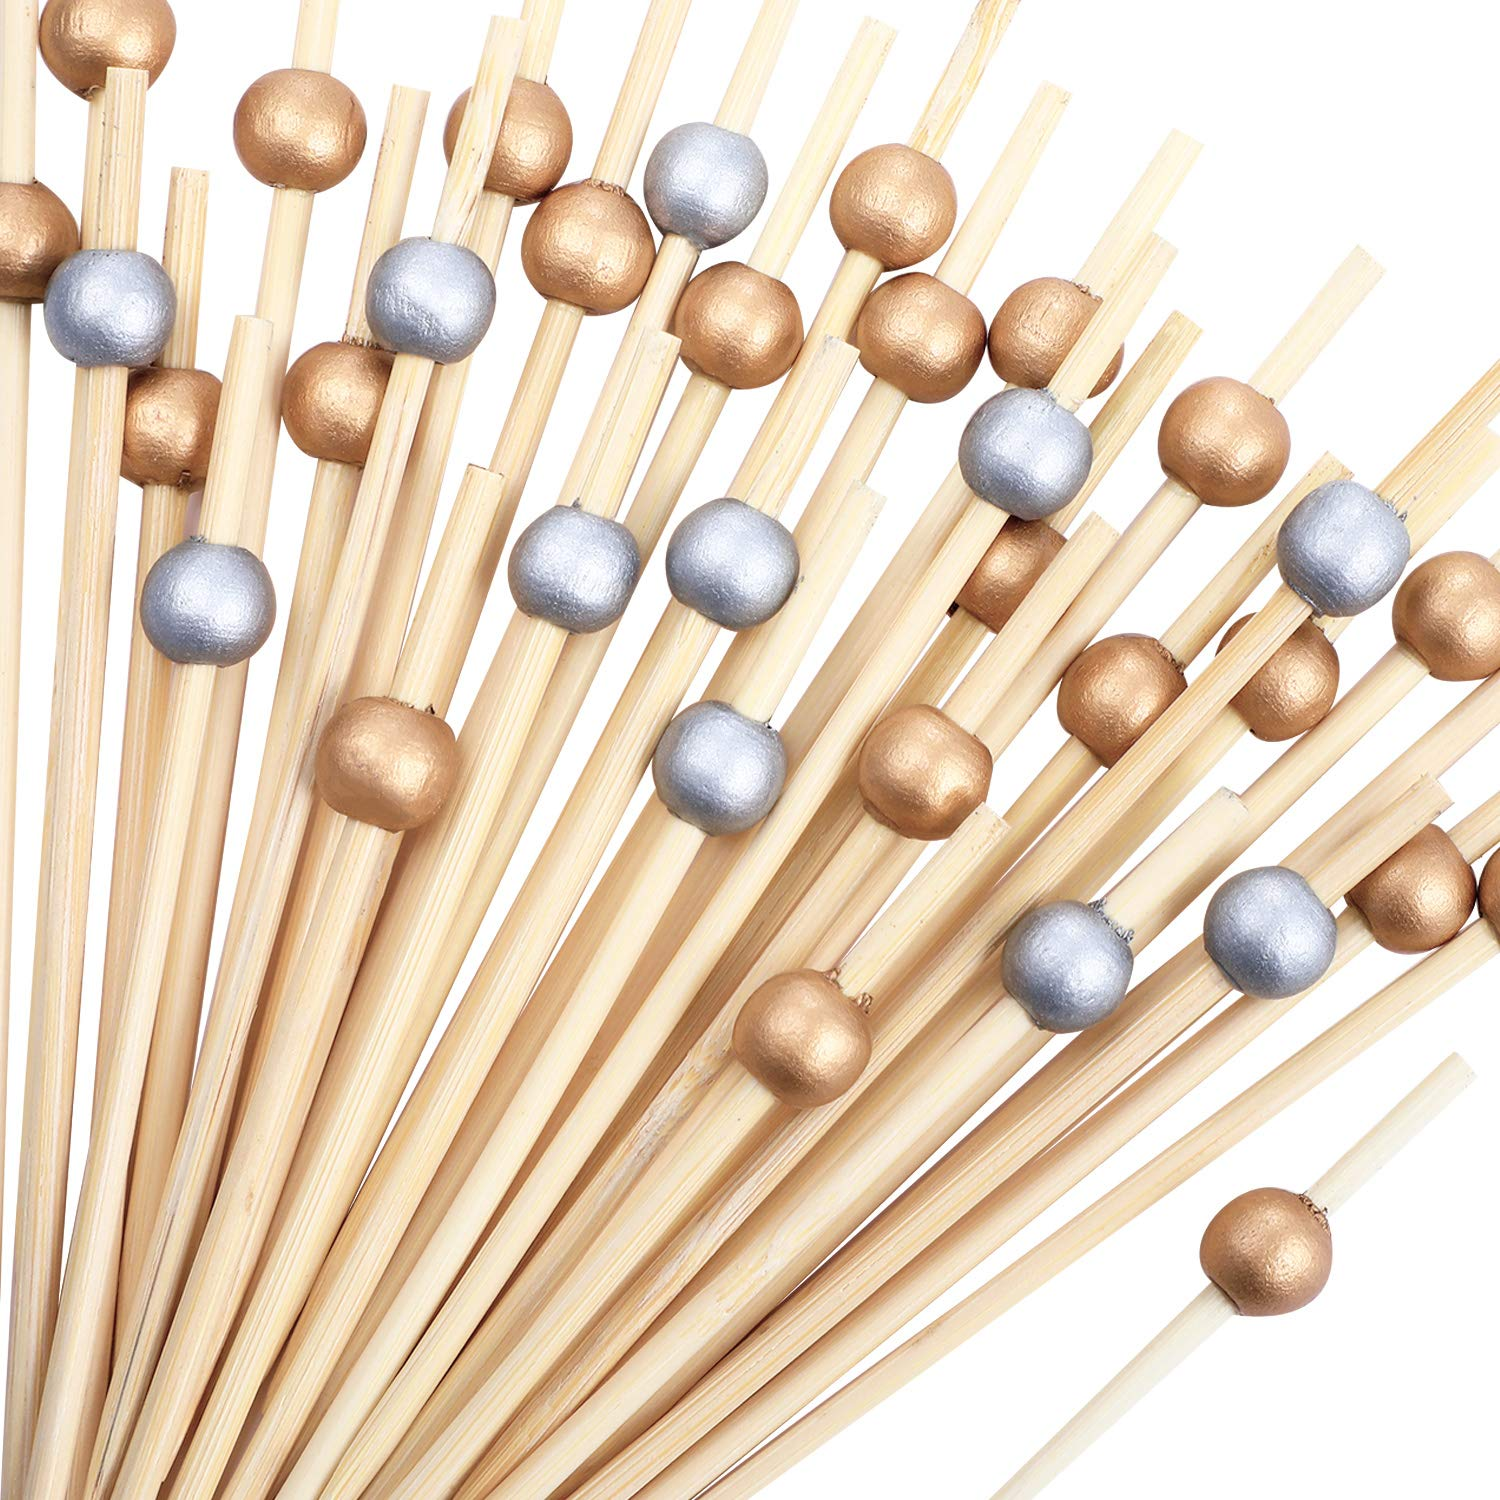 Gold 1 and Silver 1 Blulu 200 Pieces Cocktail Picks 4.7 Inch Fruit Sticks Pearl Bamboo Toothpicks for Wedding Birthday Party Supplies